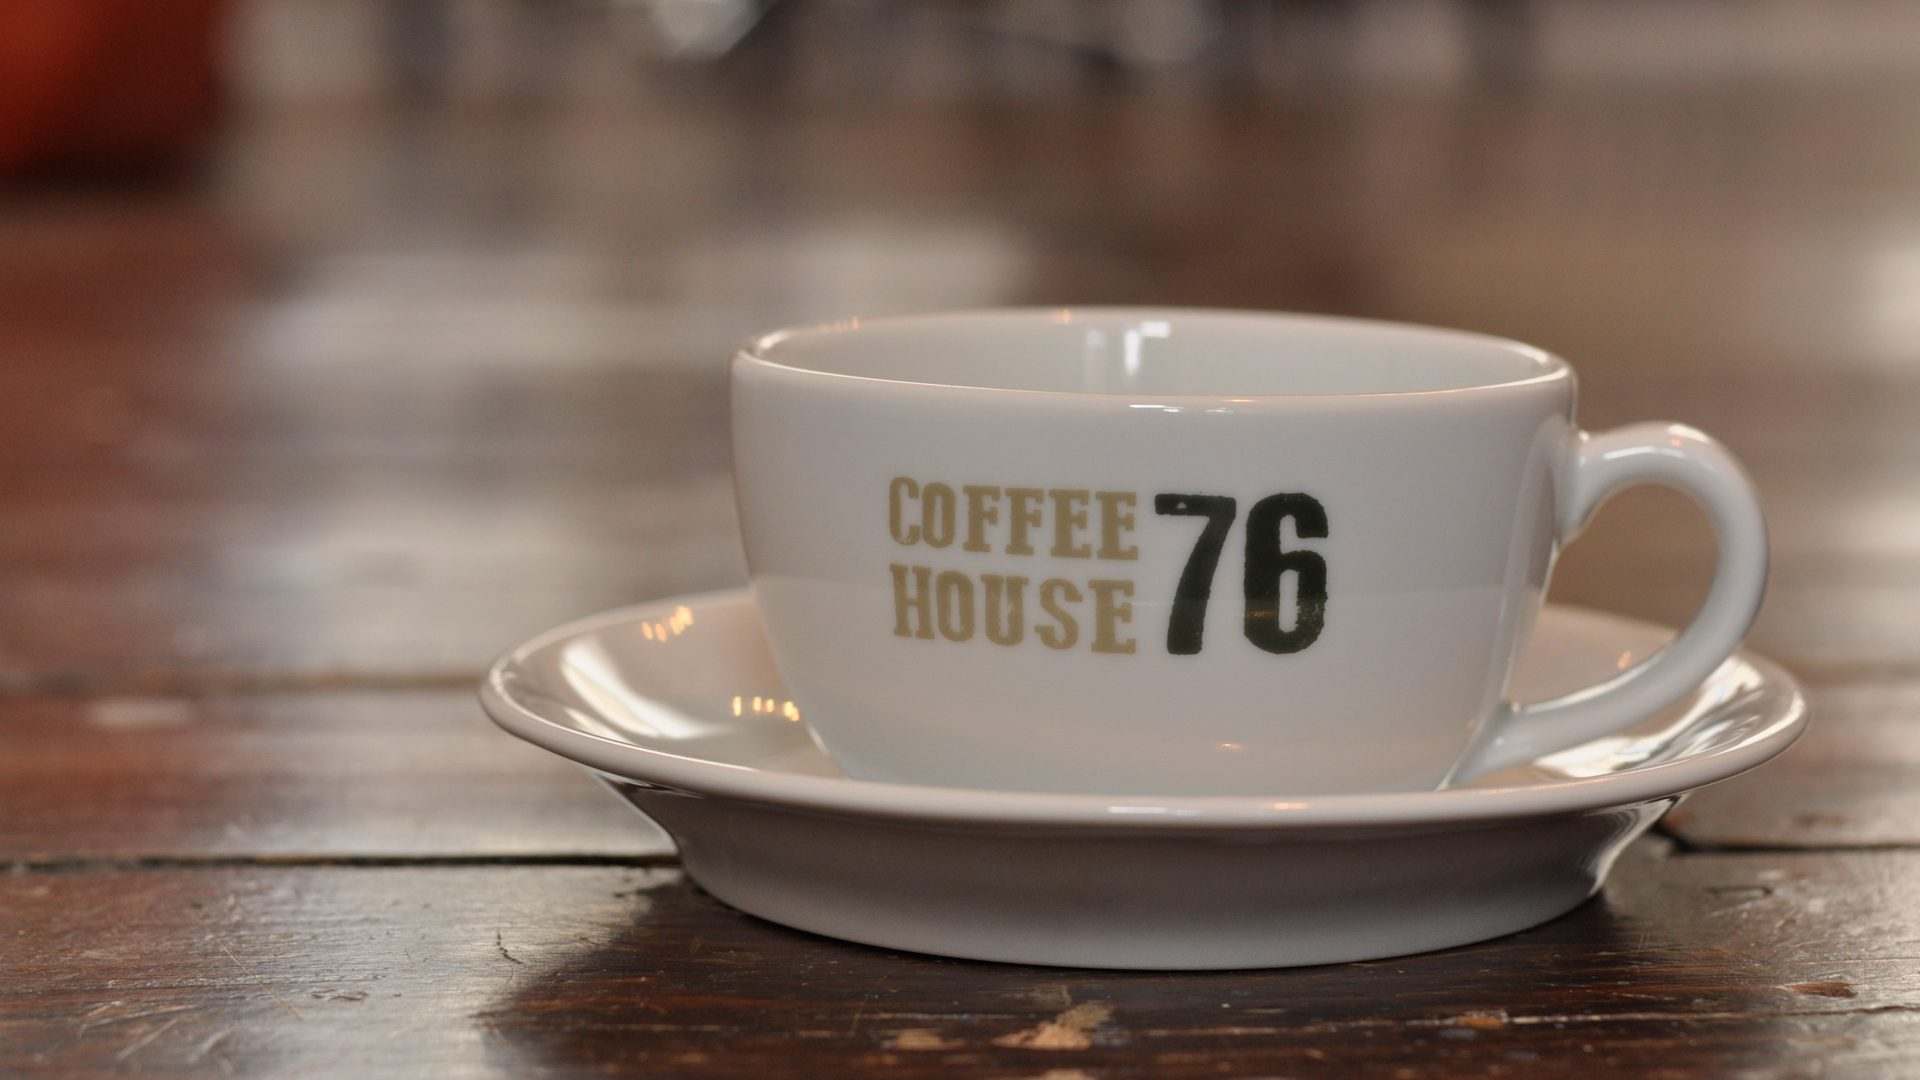 Coffee House 76 branded cup and saucer photograph